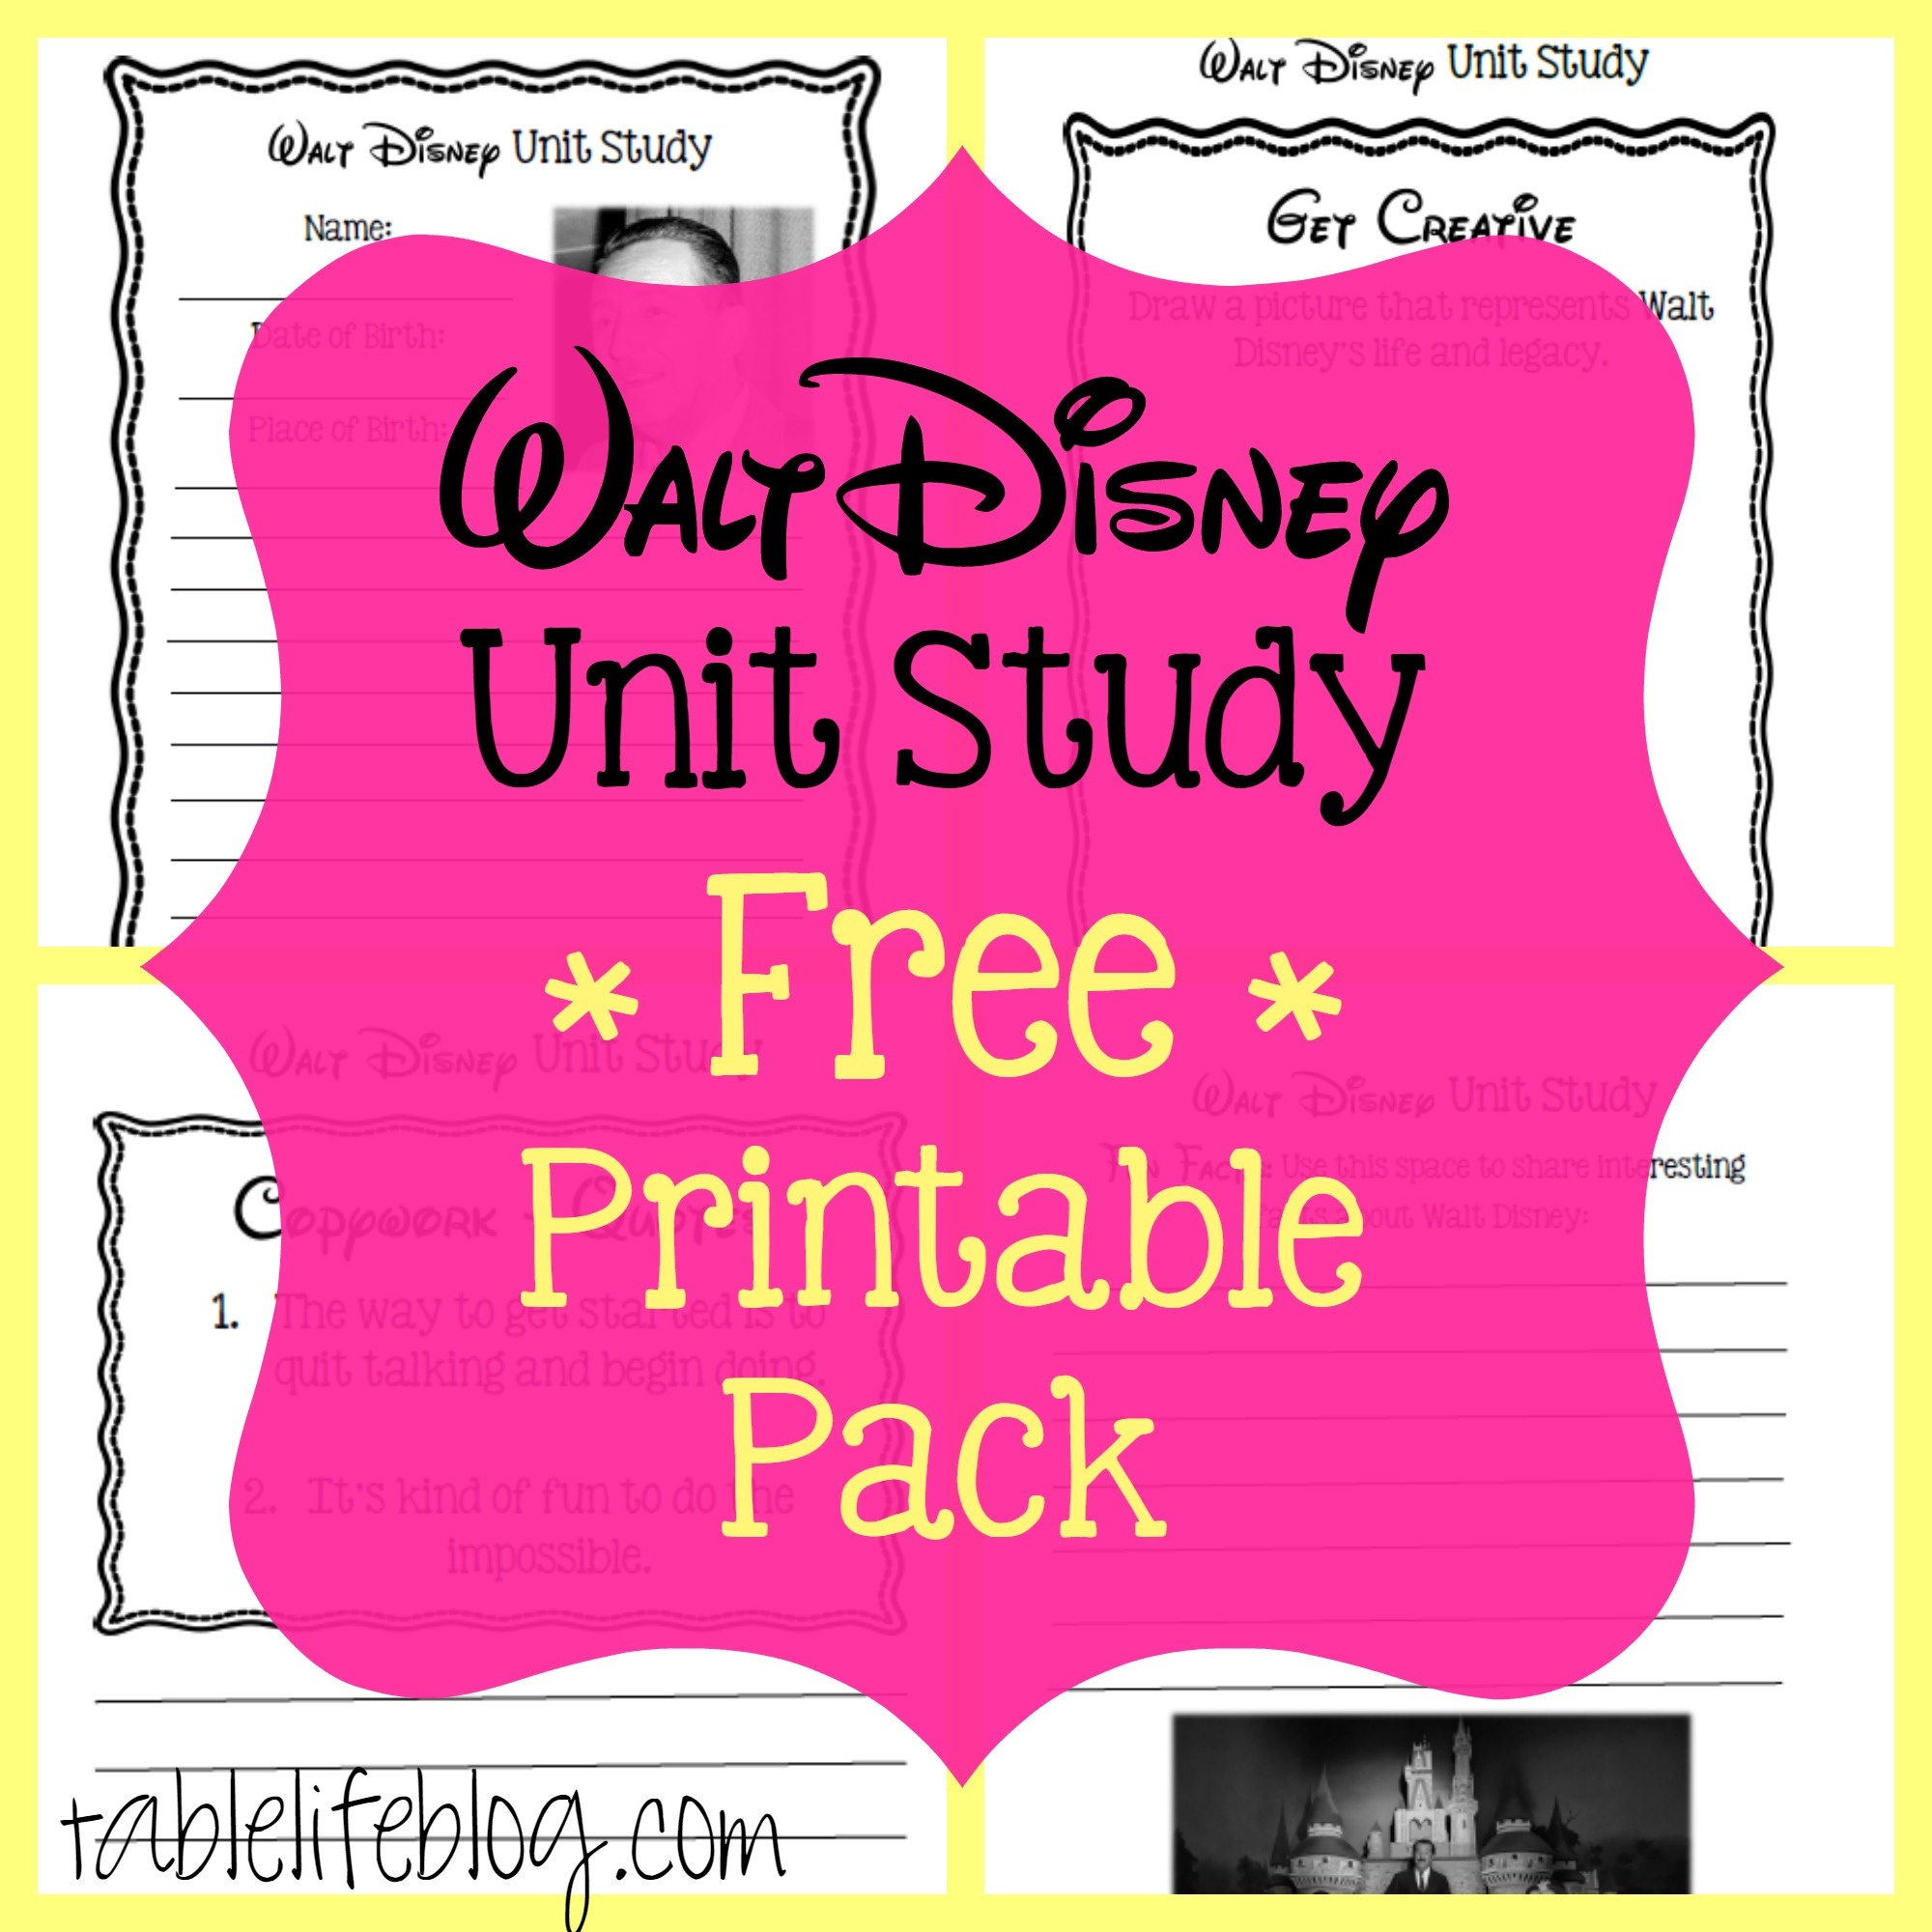 Walt Disney Unit Study (With Free Printable!) • Tablelifeblog - Free Printable Disney Stories